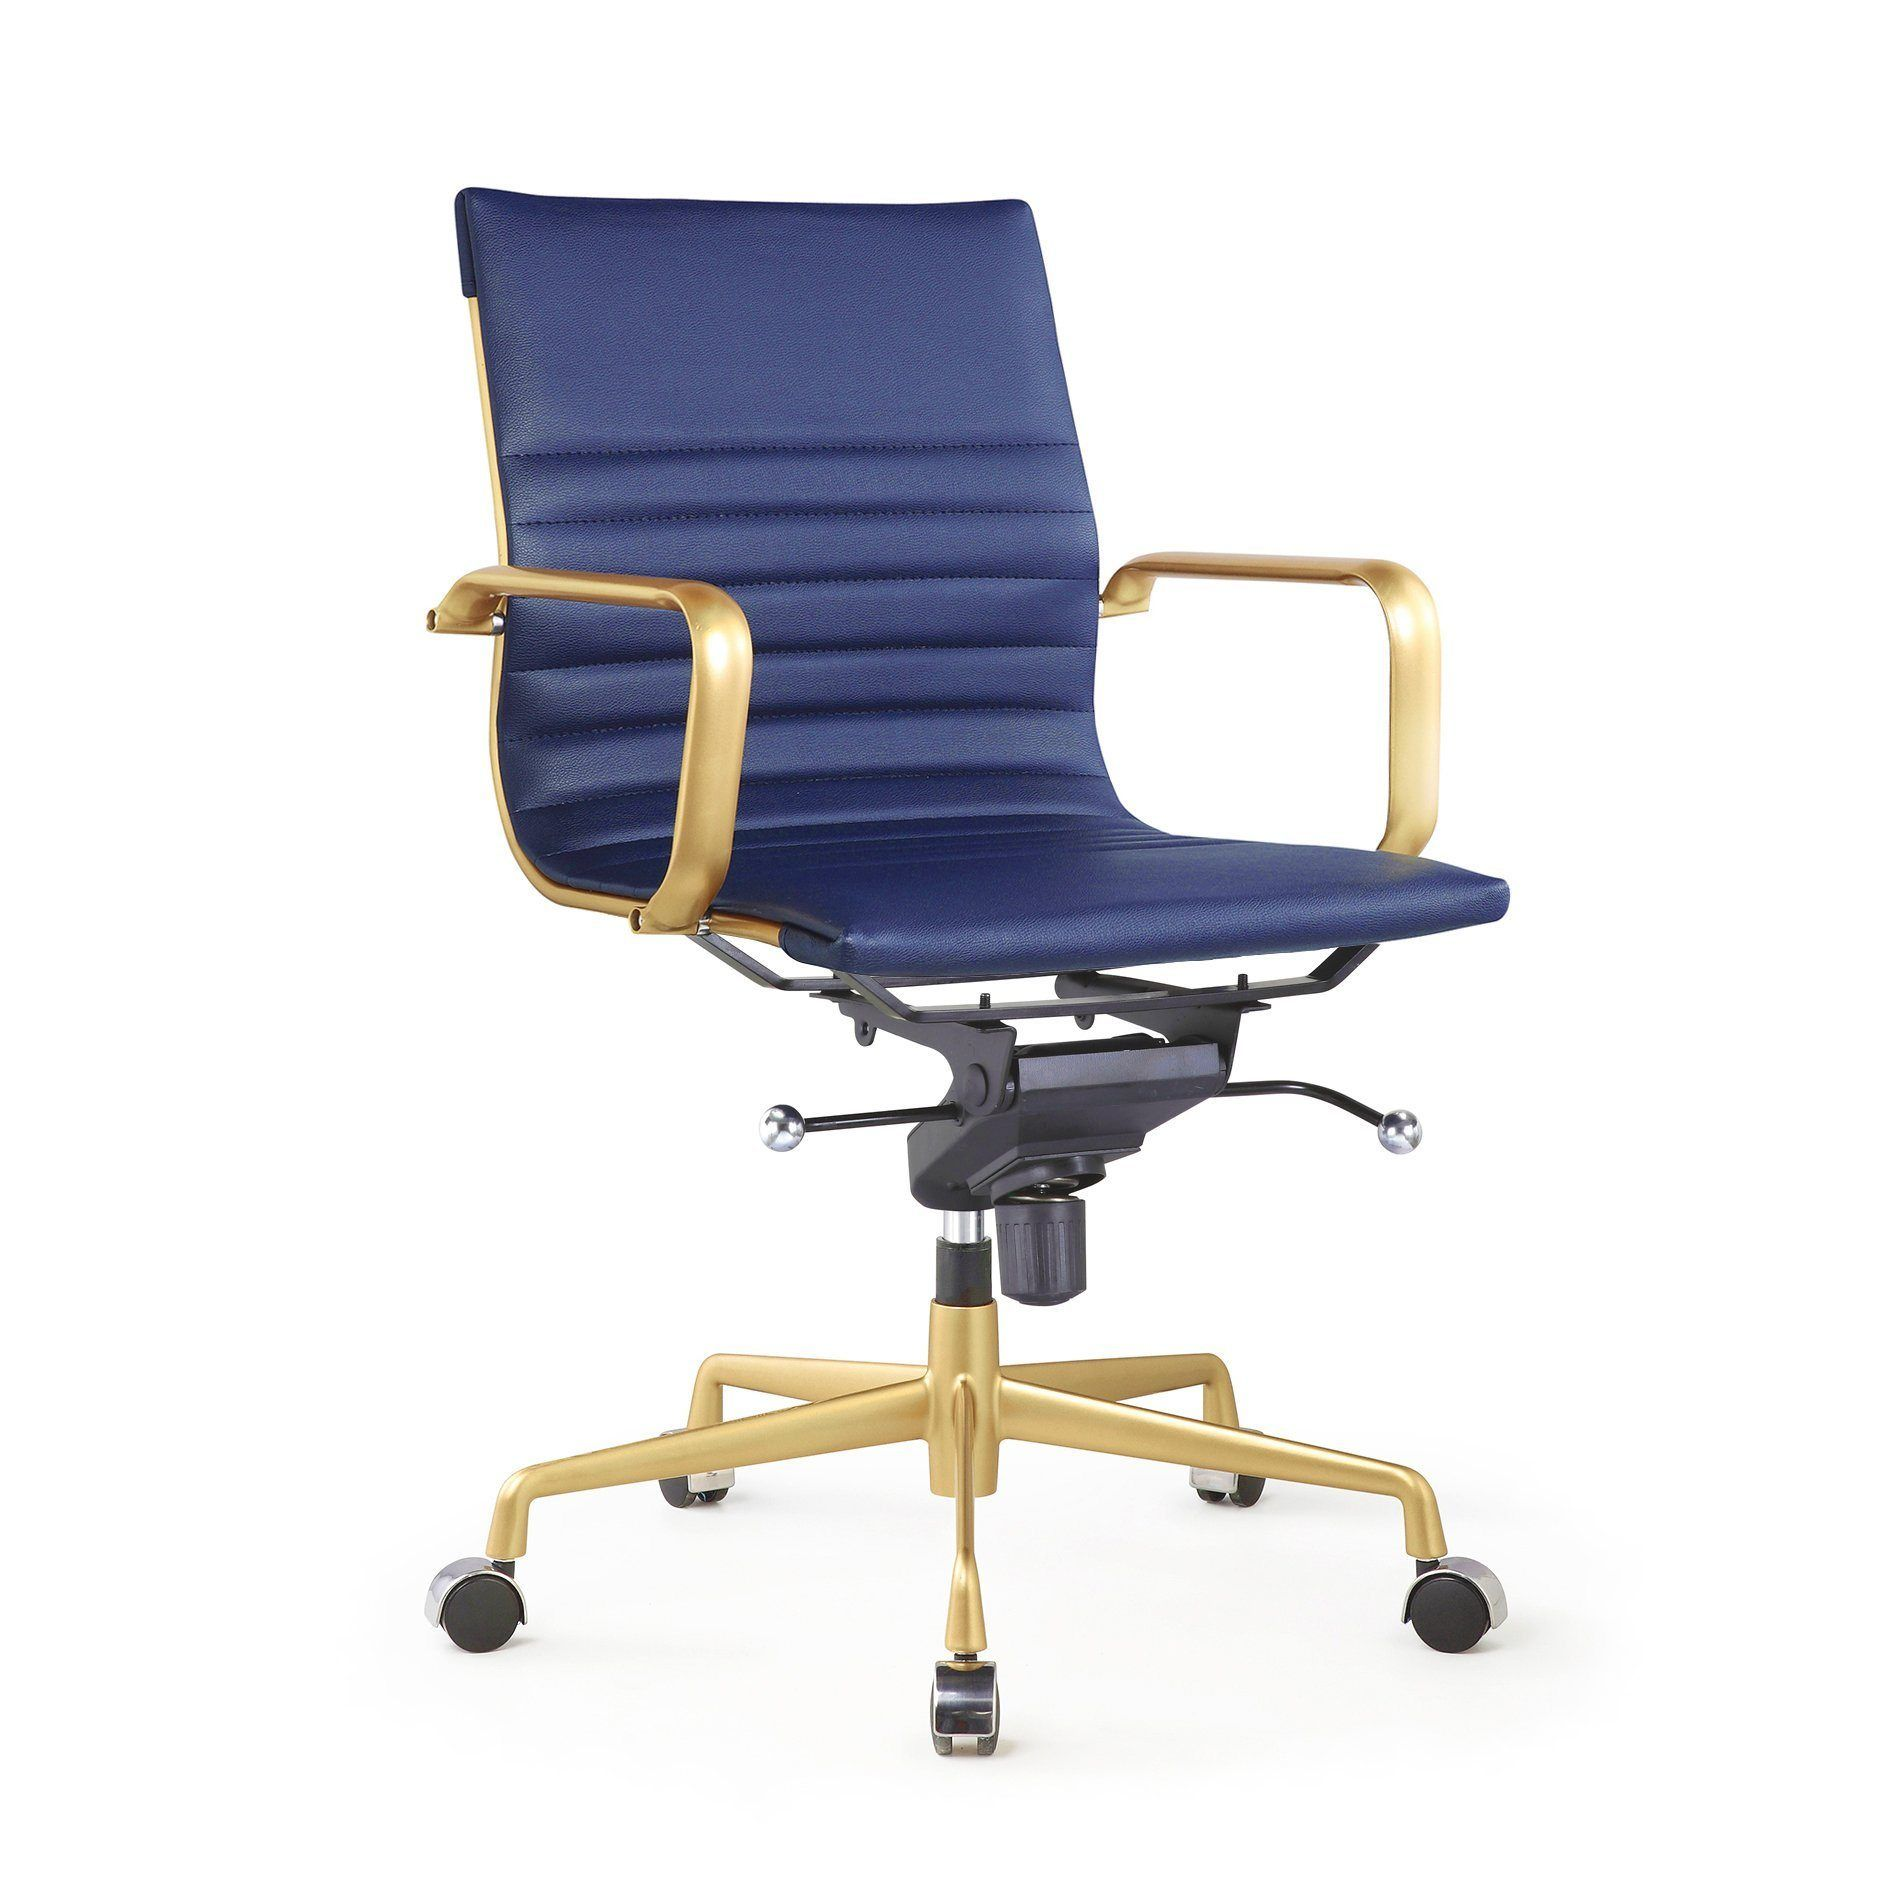 Fabulous Decade Navy Gold Modern Classic Aluminum Office Chair Set Ncnpc Chair Design For Home Ncnpcorg